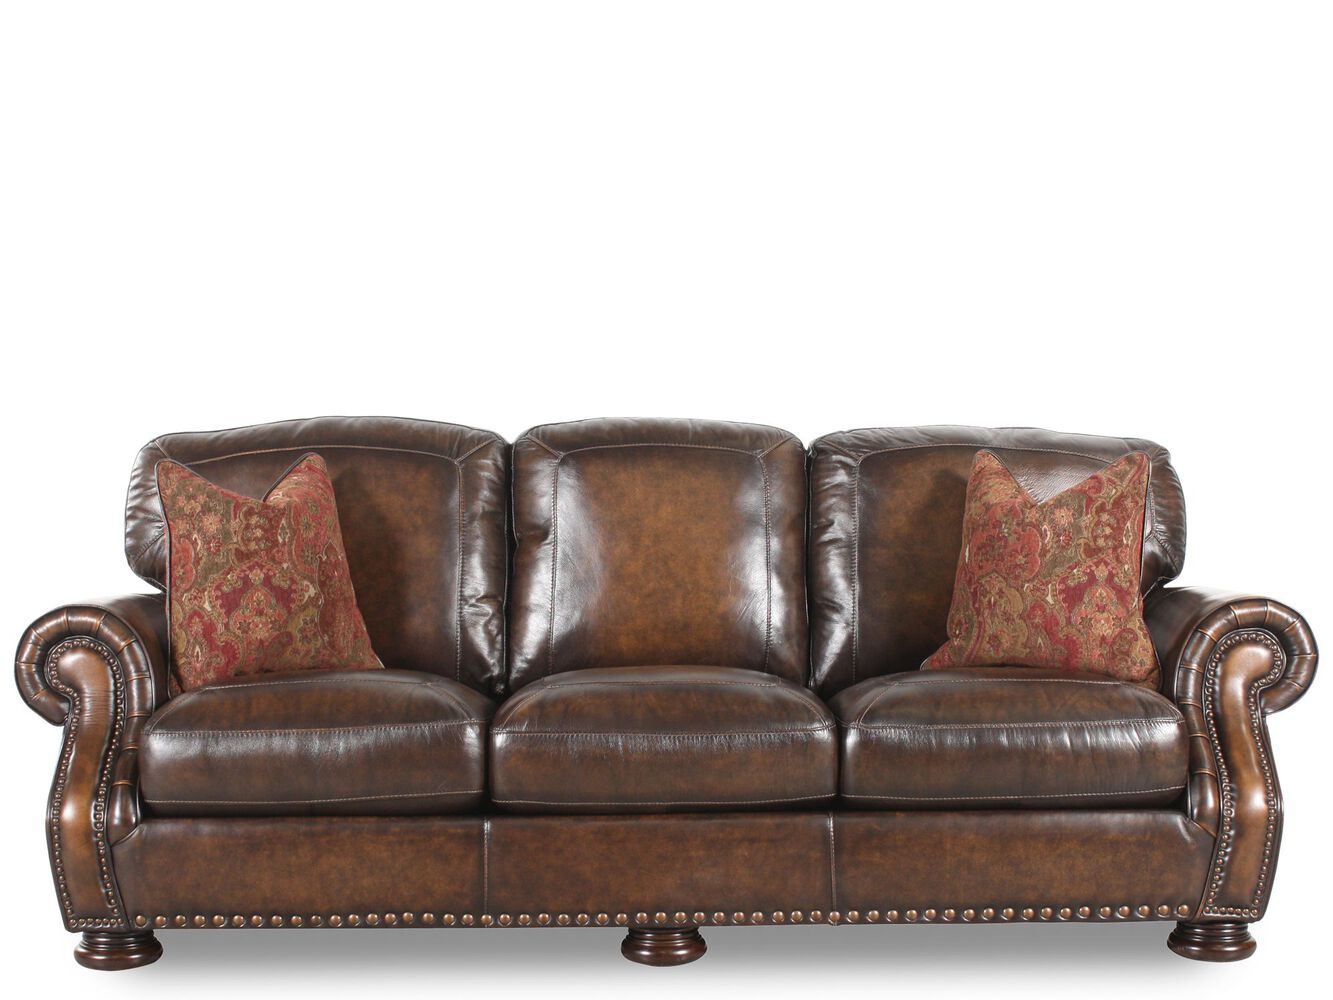 Nailhead accented leather 97 sofa in brown mathis brothers furniture for Mathis brothers living room furniture